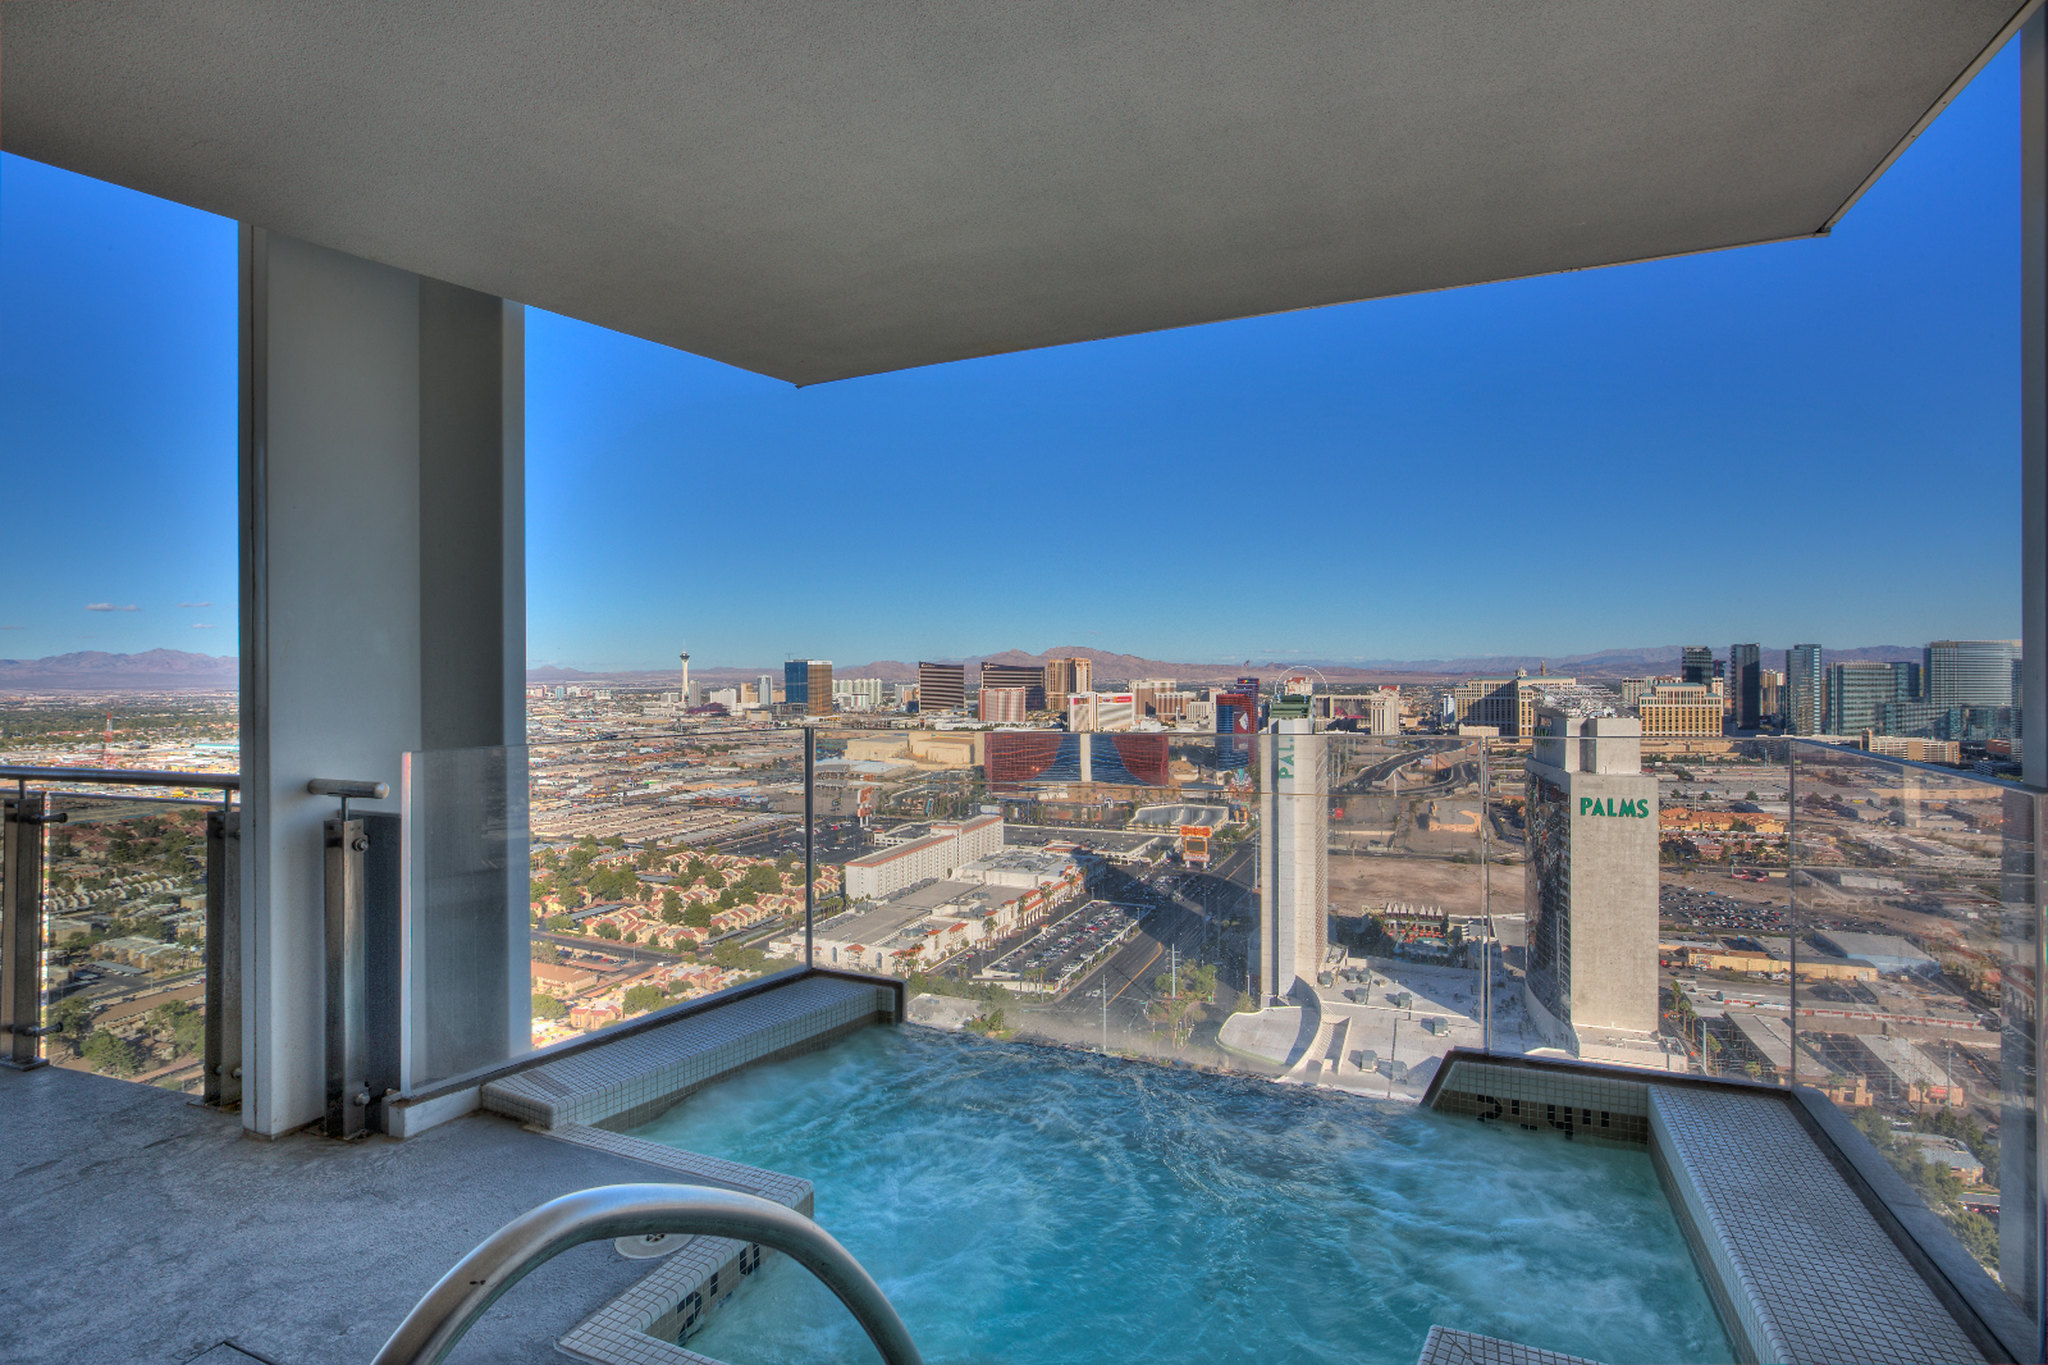 The Palms Place Hotel And Spa Las Vegas